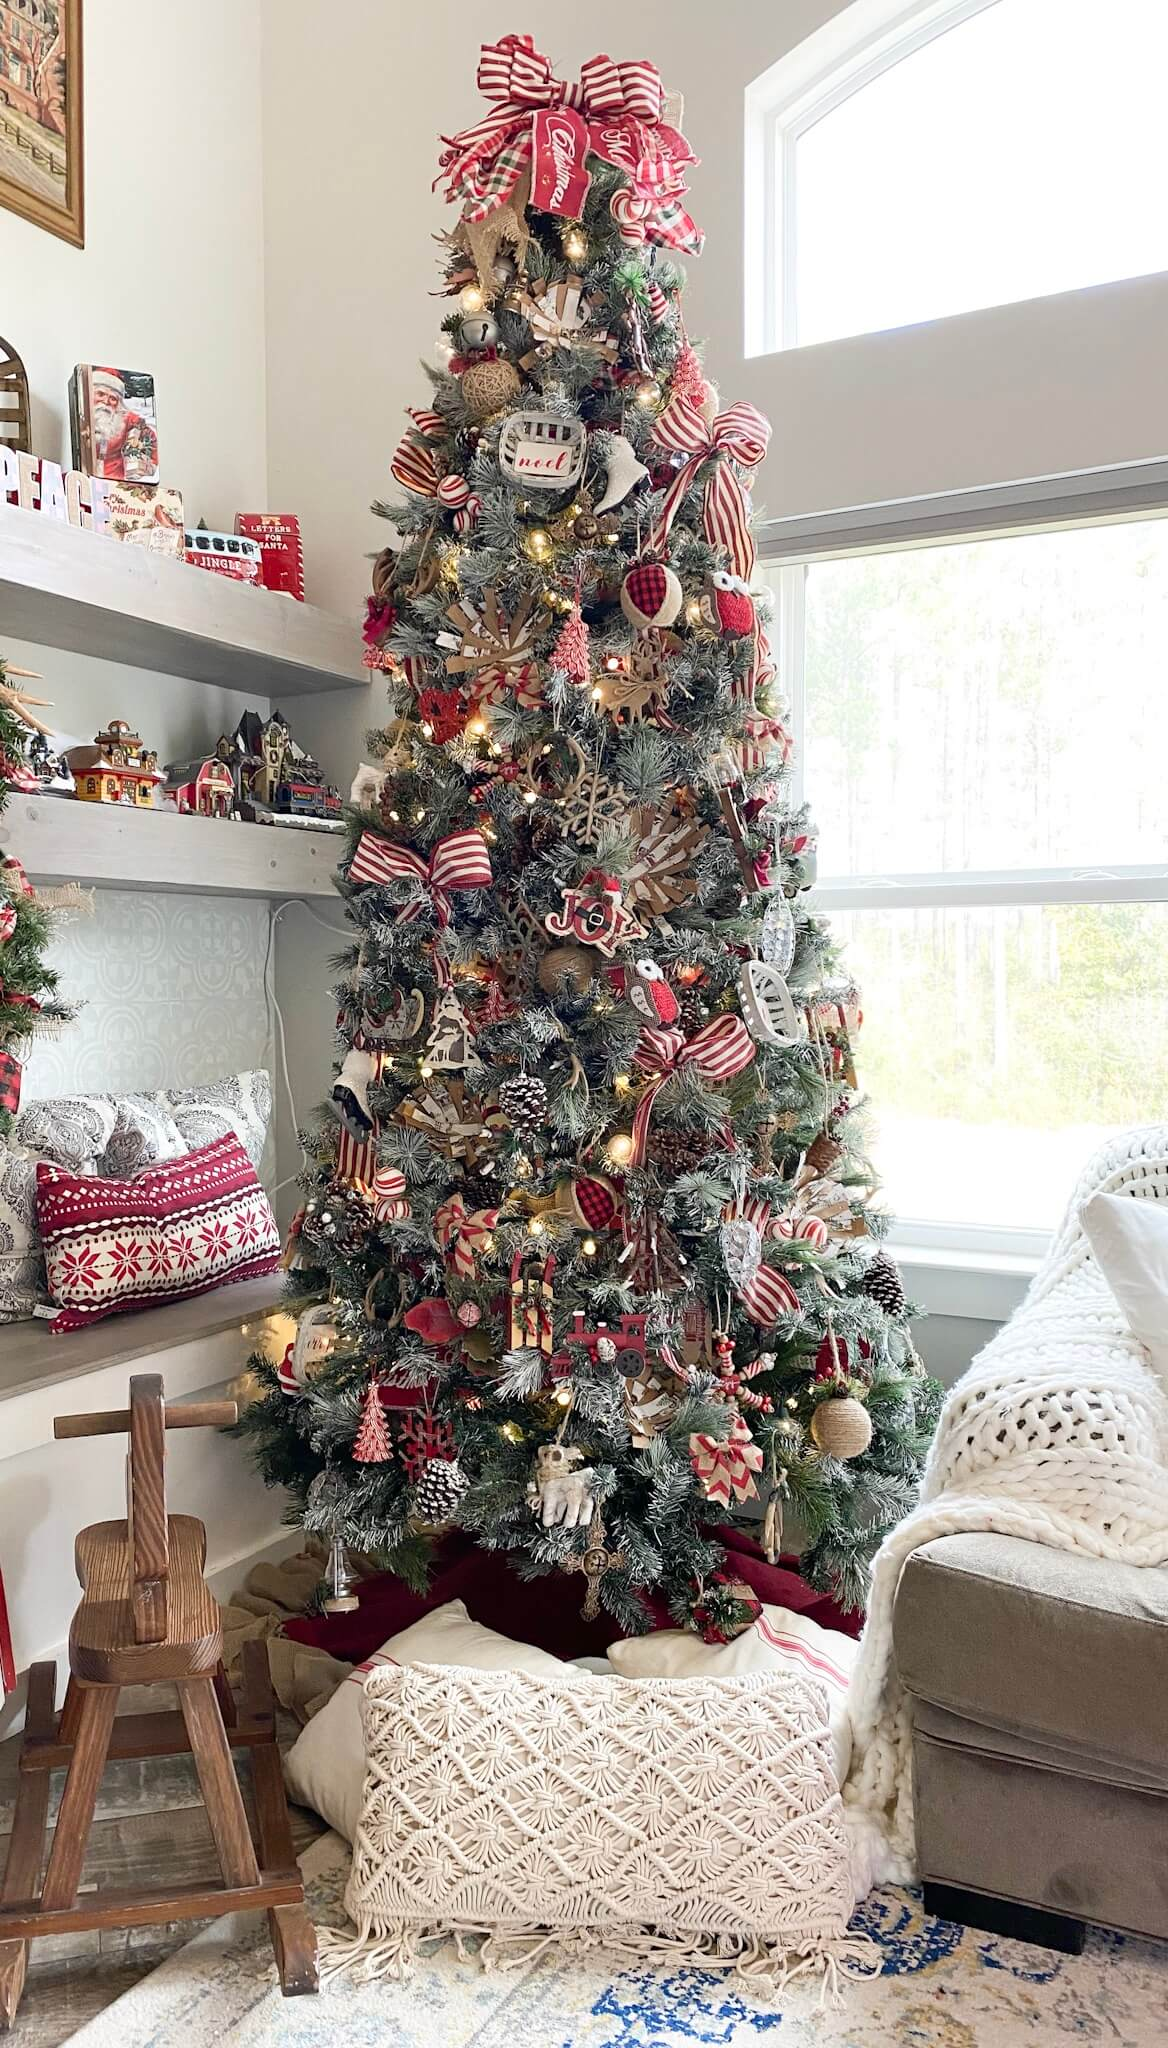 Christmas Tree decorated with rustic decor in the family room